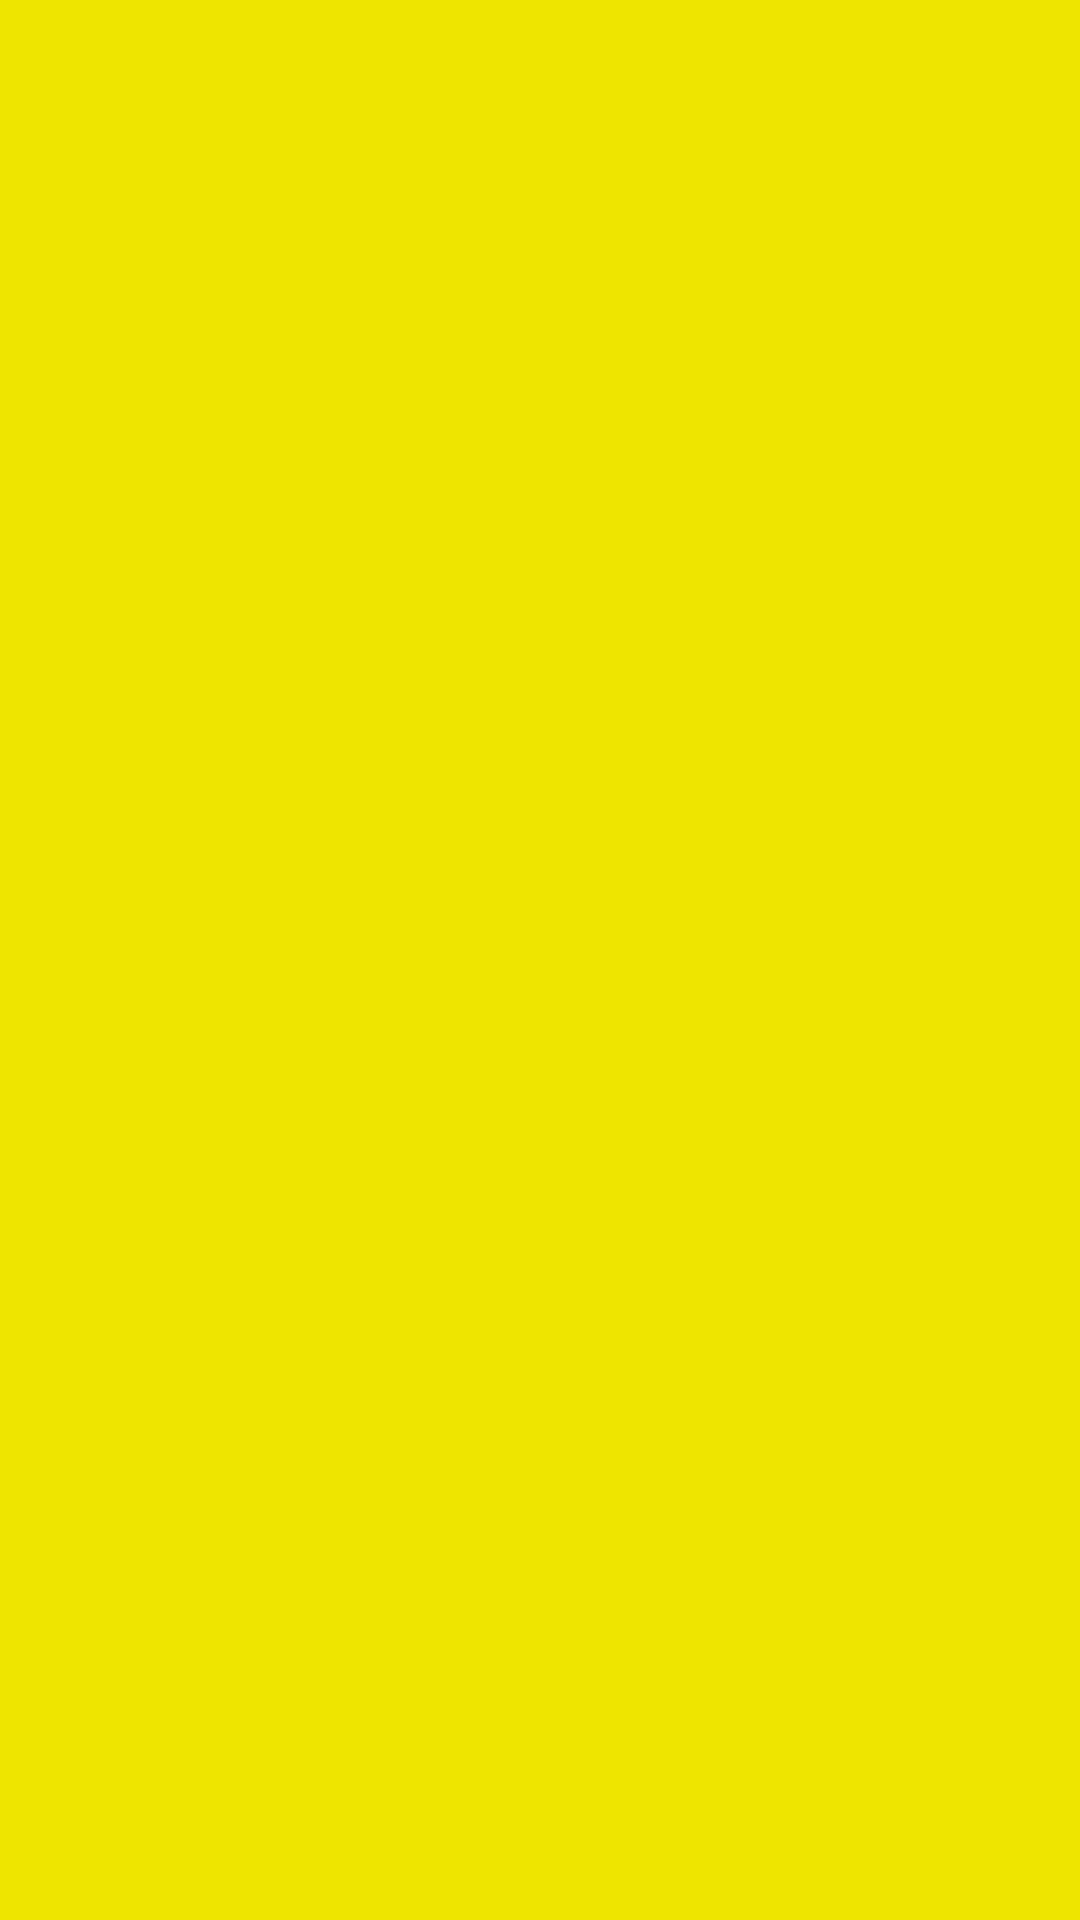 1080x1920 Titanium Yellow Solid Color Background